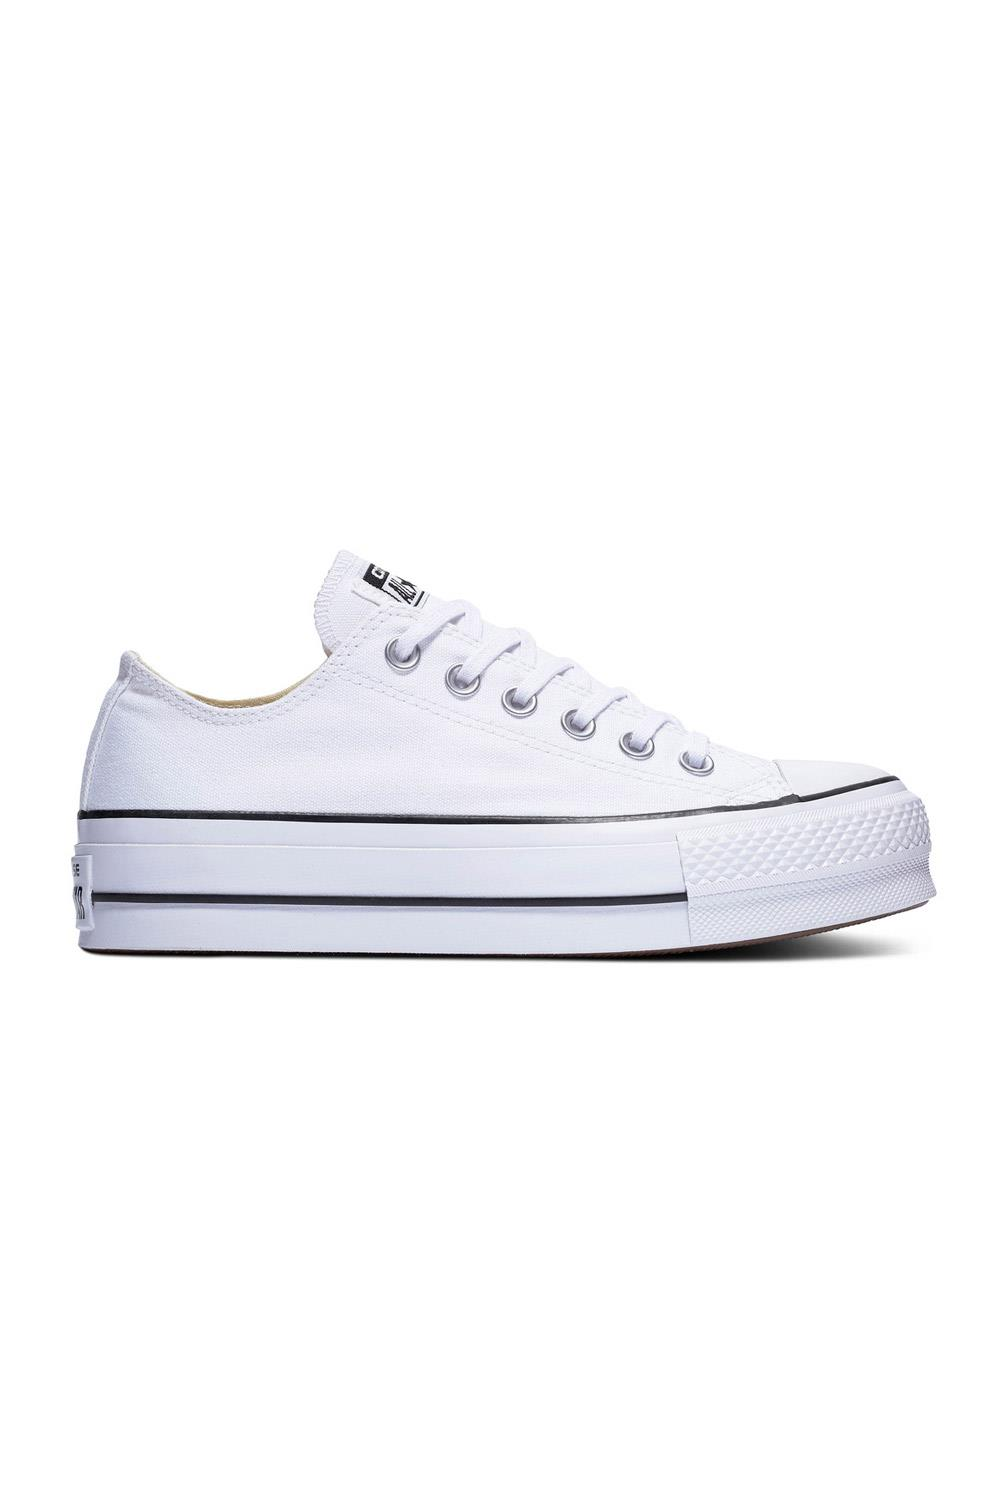 total look zara teresa bass Converse, 79,95€